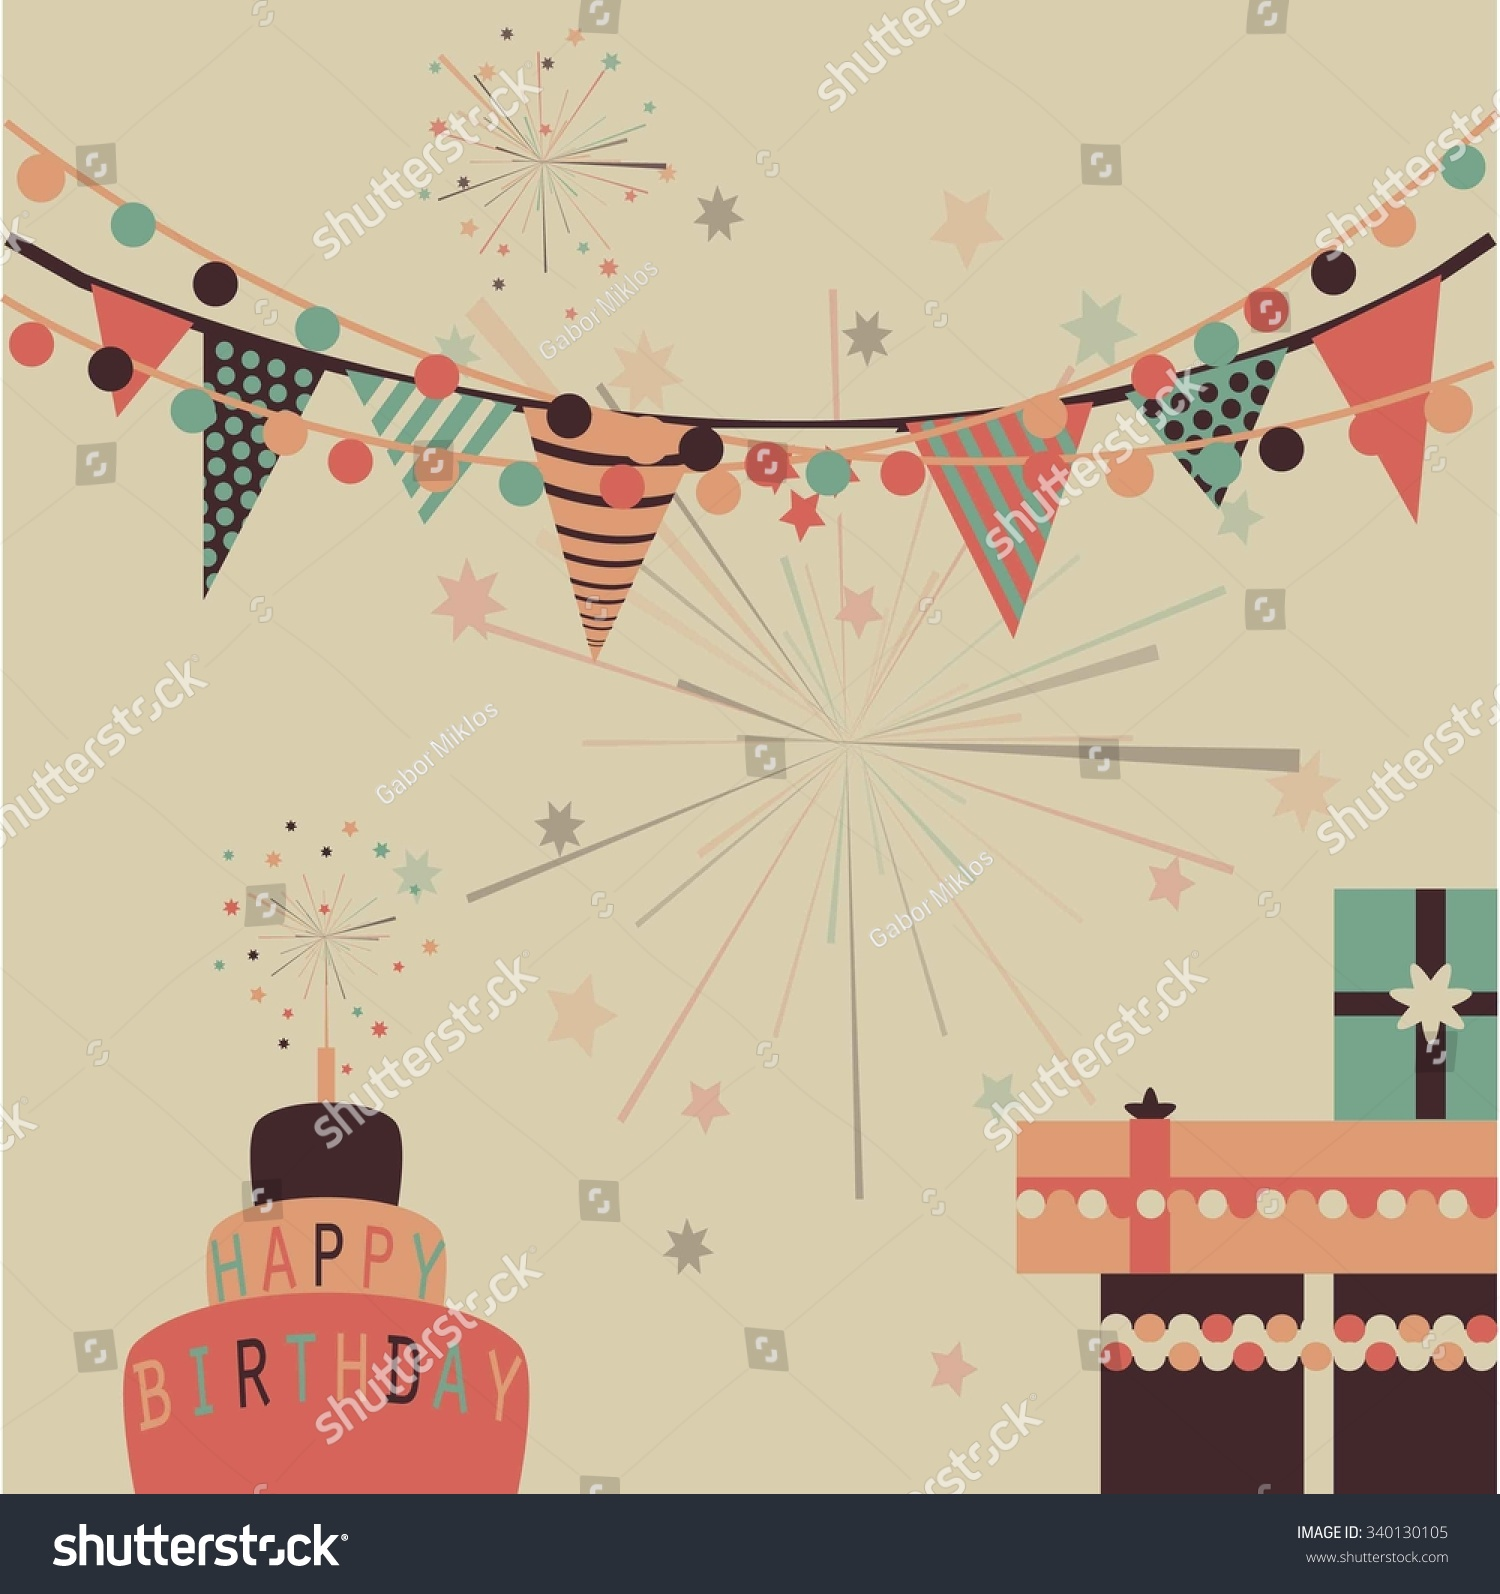 Vector bunting flags lovely celebration card with colorful paper - Happy Birthday Vector Background In Pastel Colors With Cake Gifts And Party Flags